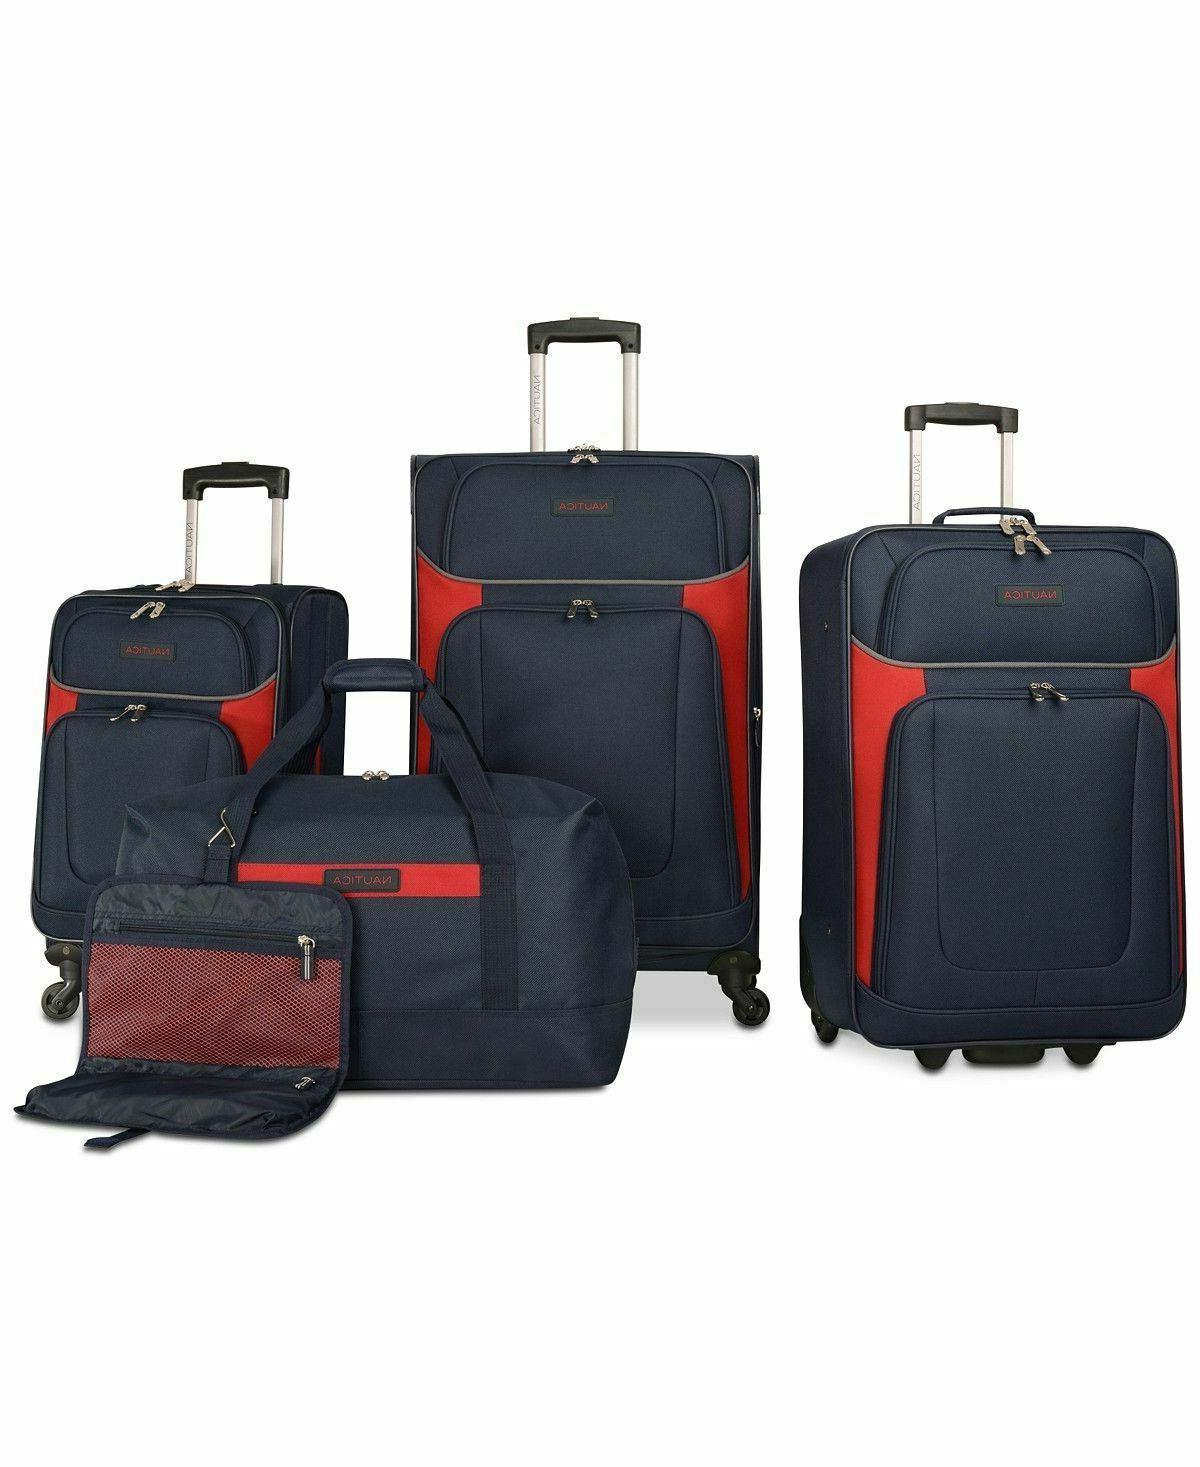 460 new oceanview 5 piece luggage set